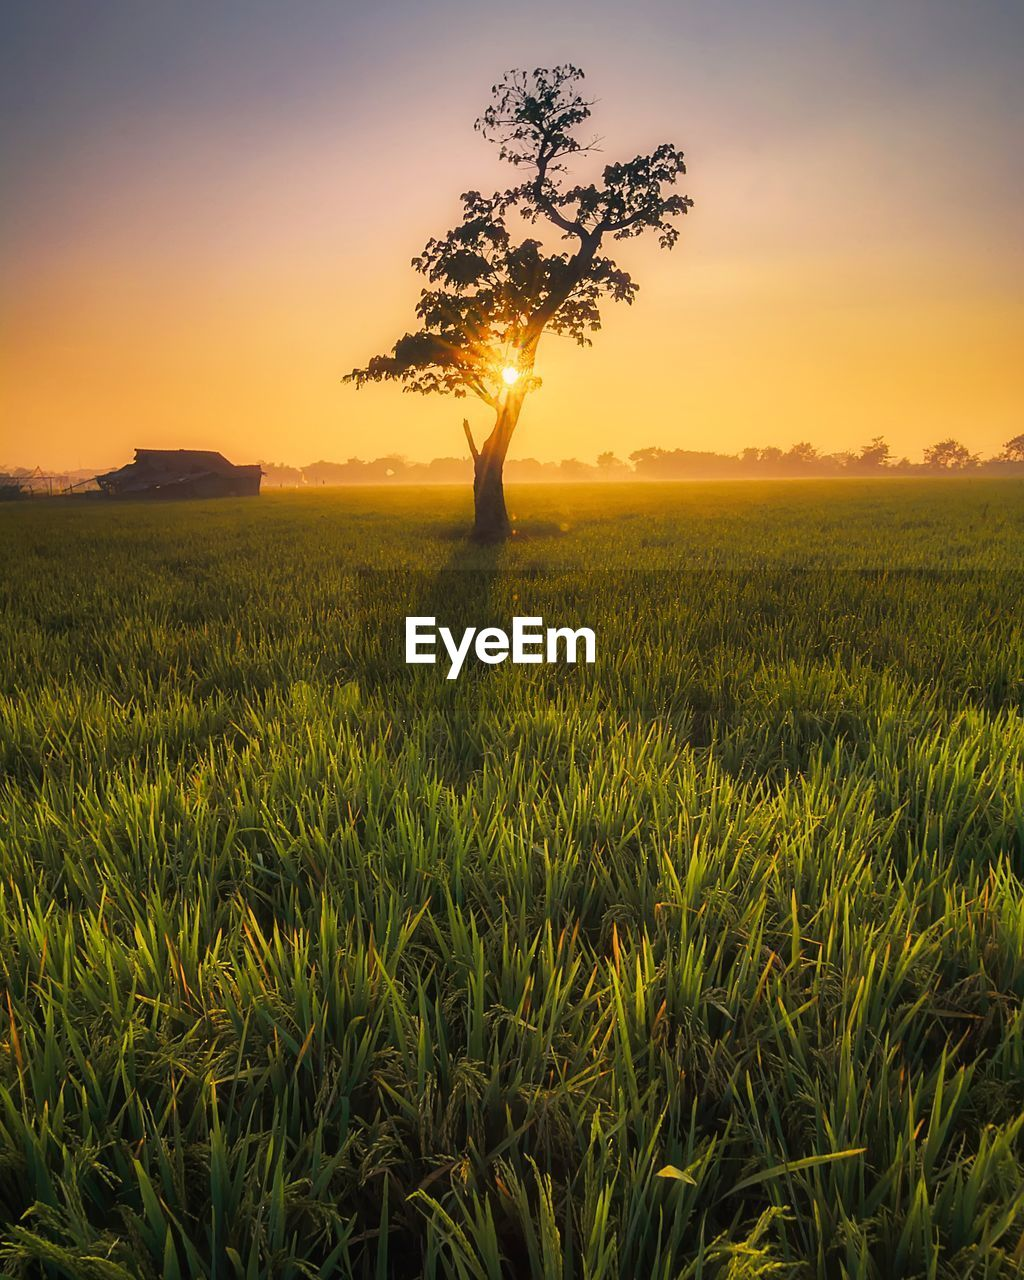 plant, sunset, beauty in nature, growth, field, sky, landscape, environment, scenics - nature, land, tranquility, tranquil scene, agriculture, crop, tree, rural scene, green color, farm, nature, no people, outdoors